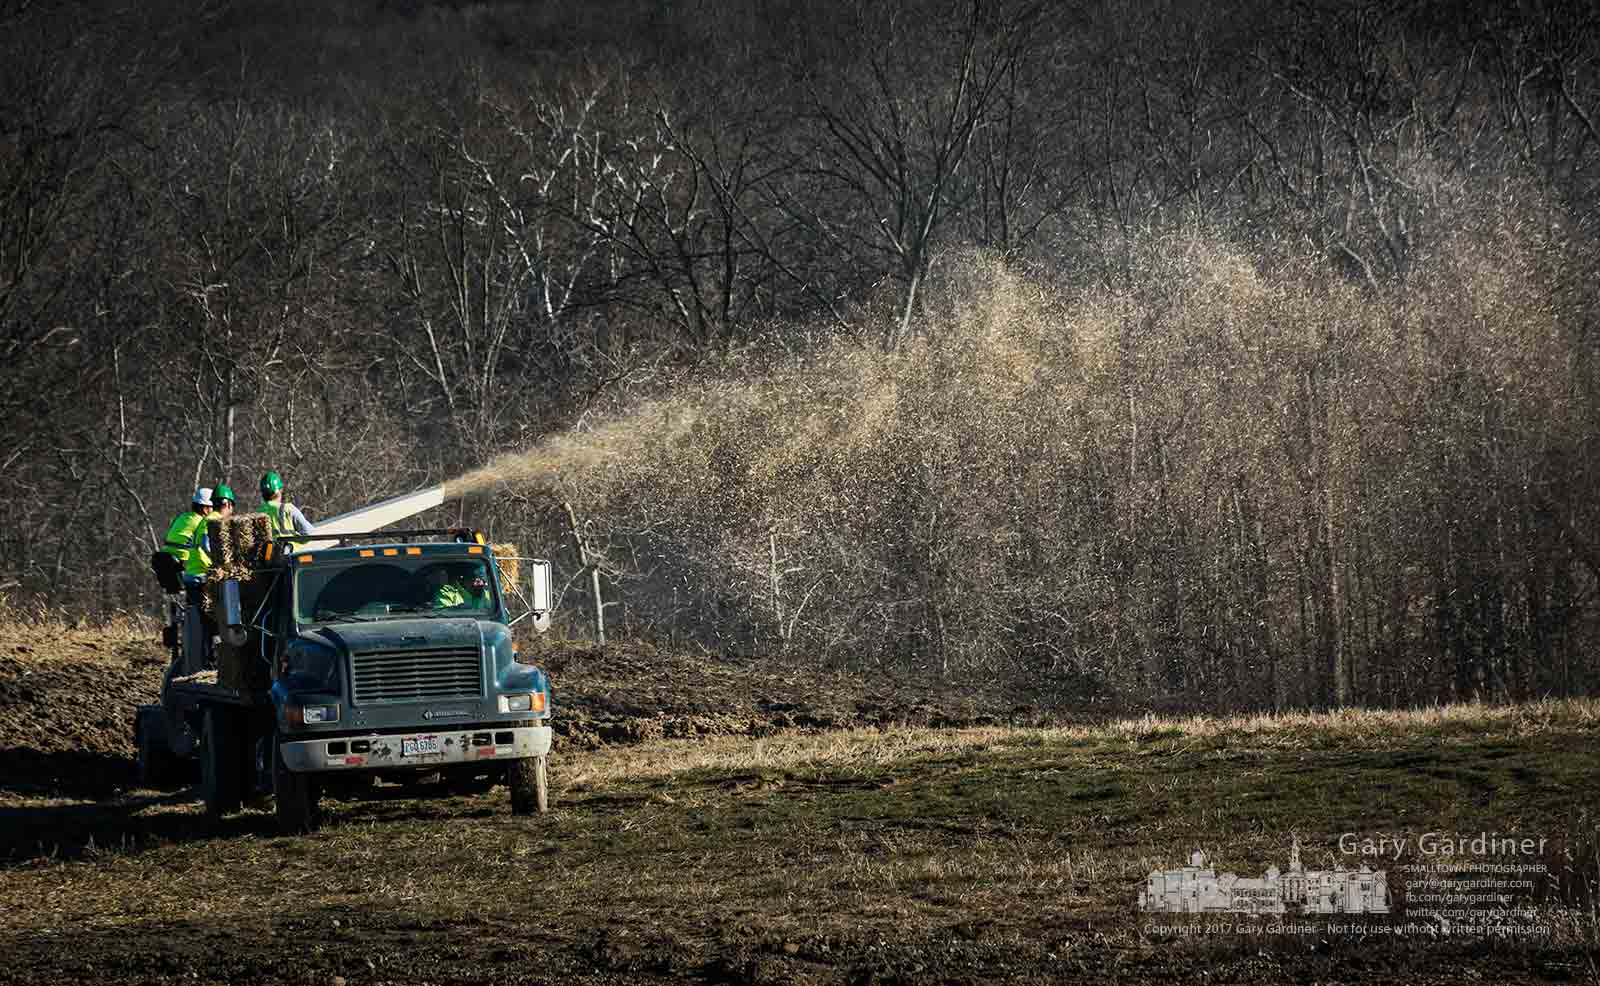 A landscaping crew blows straw across freshly seeded fields along Sunbury Road near Central College after a work crew leveled the ground in anticipation of future construction. My Final Photo for Dec. 21, 2017.